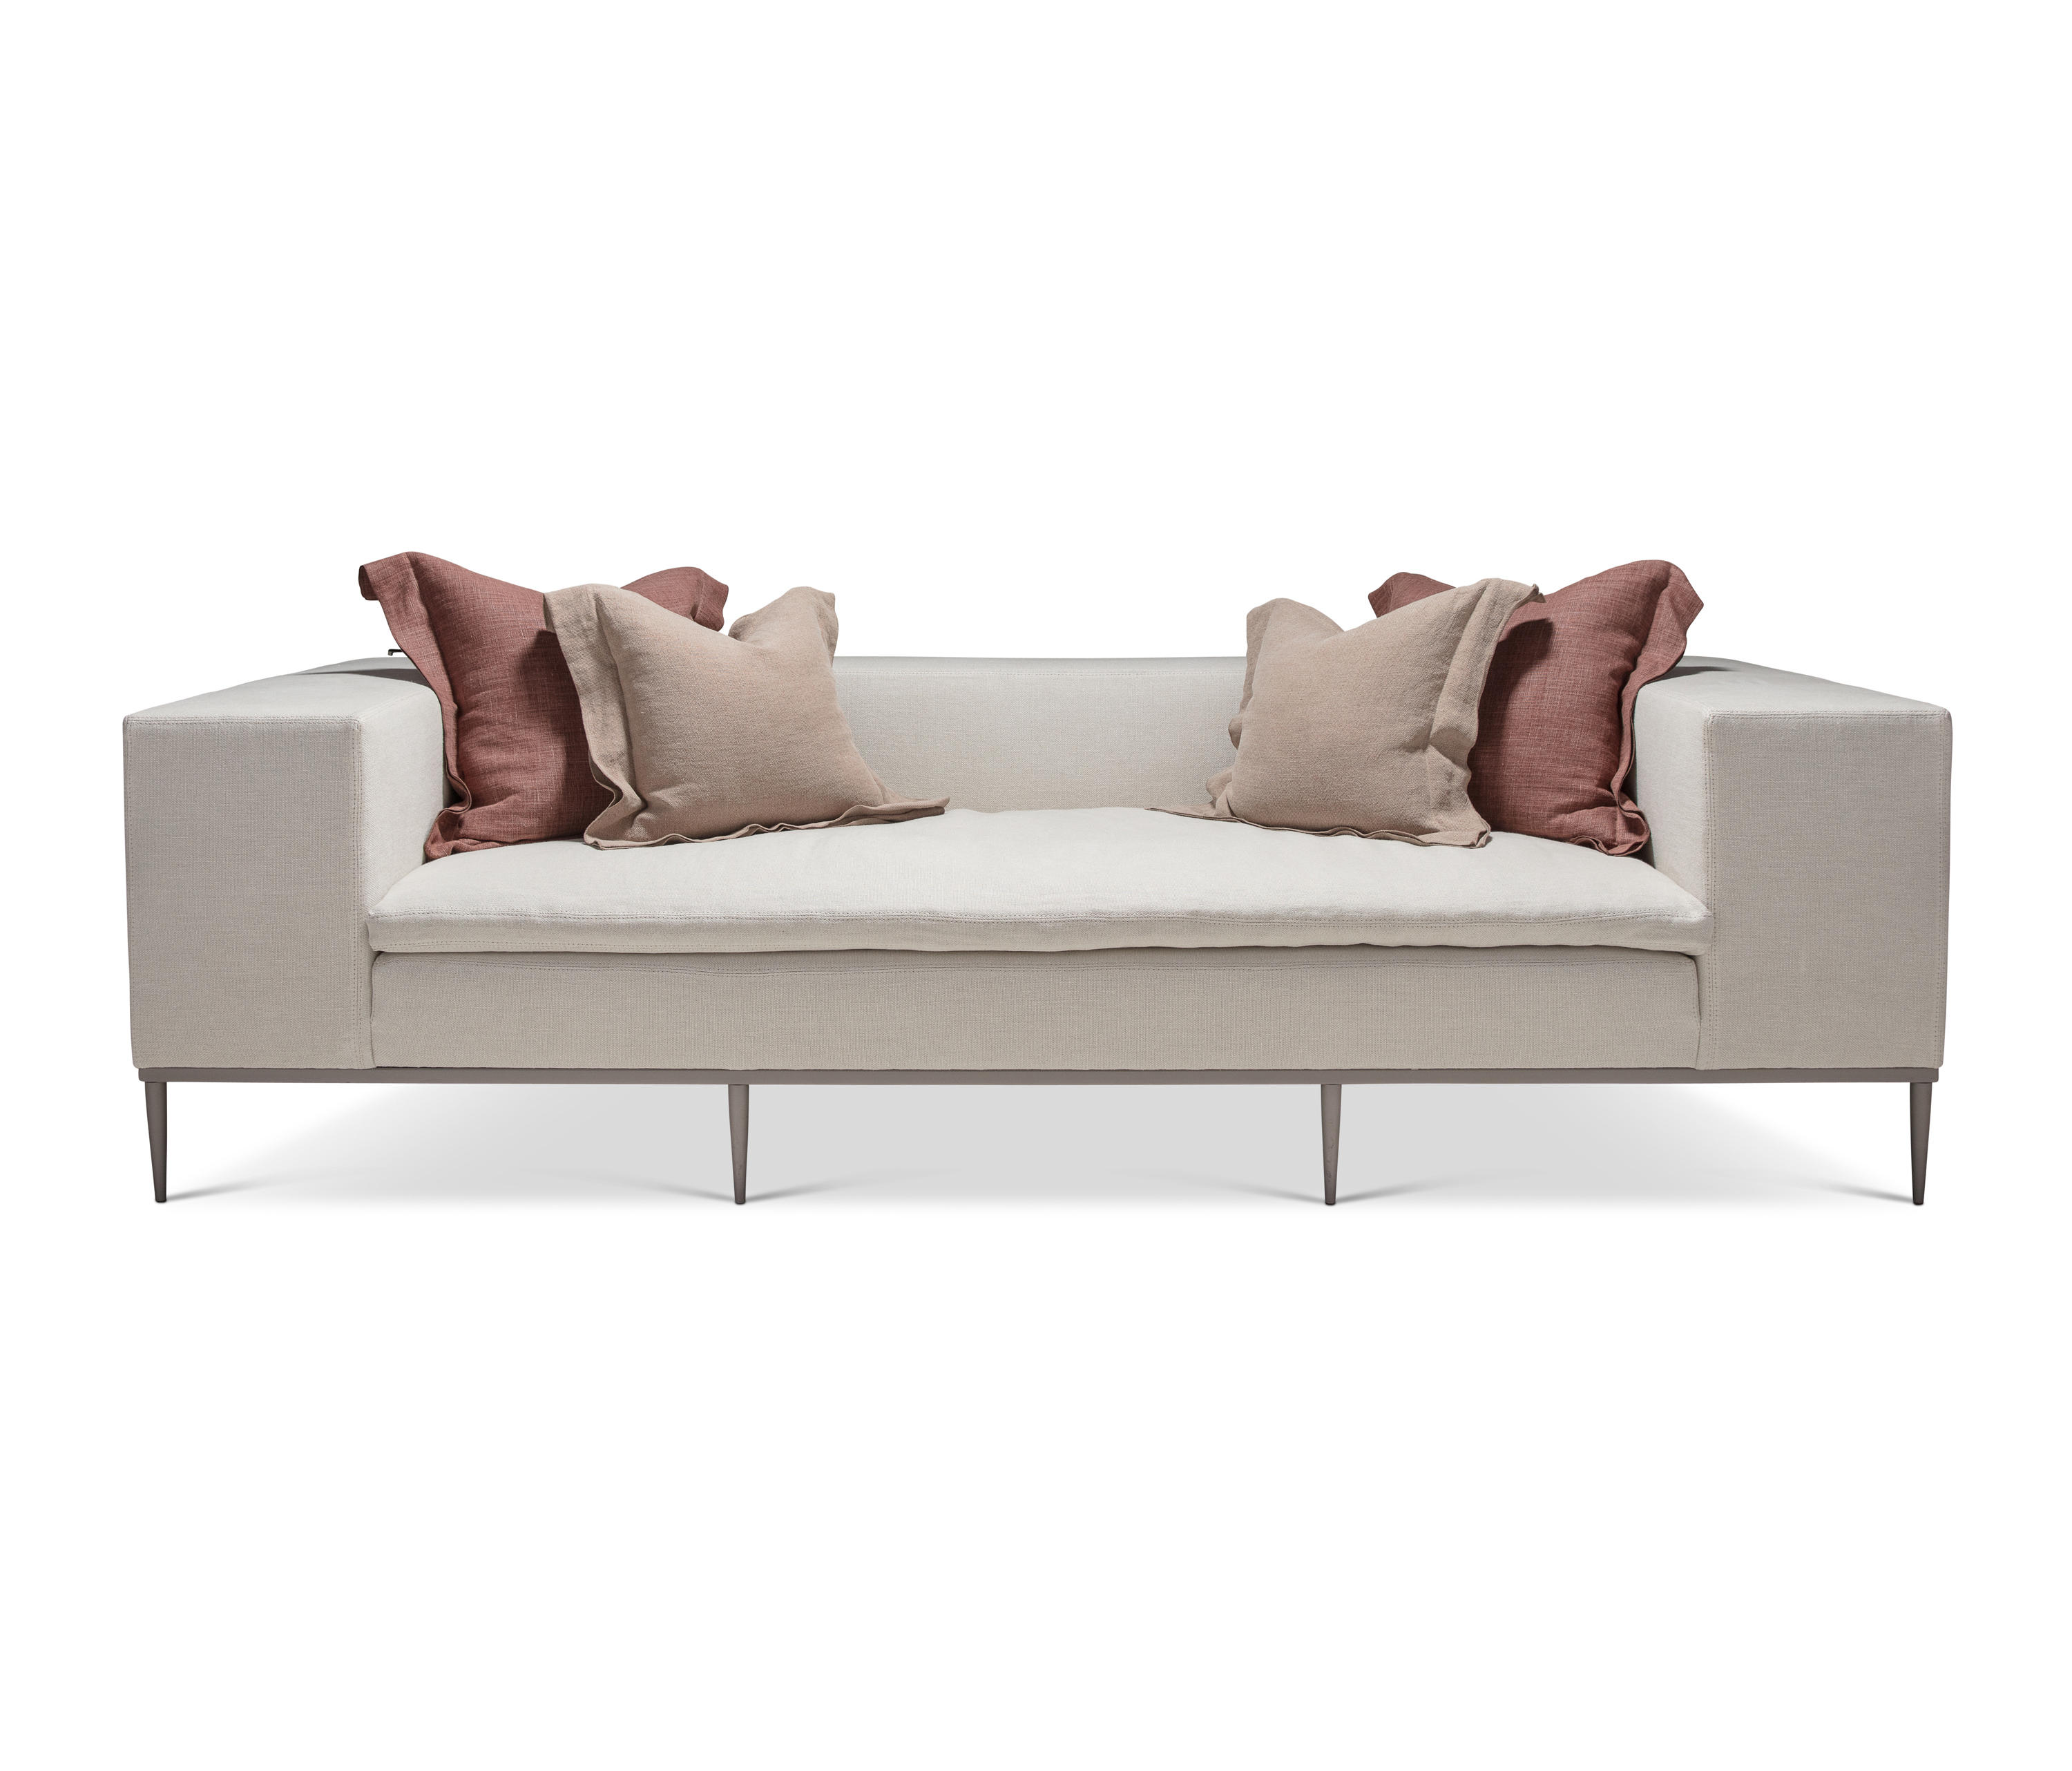 lane cooper sofa agave outdoor slipcovered sofas from verellen architonic